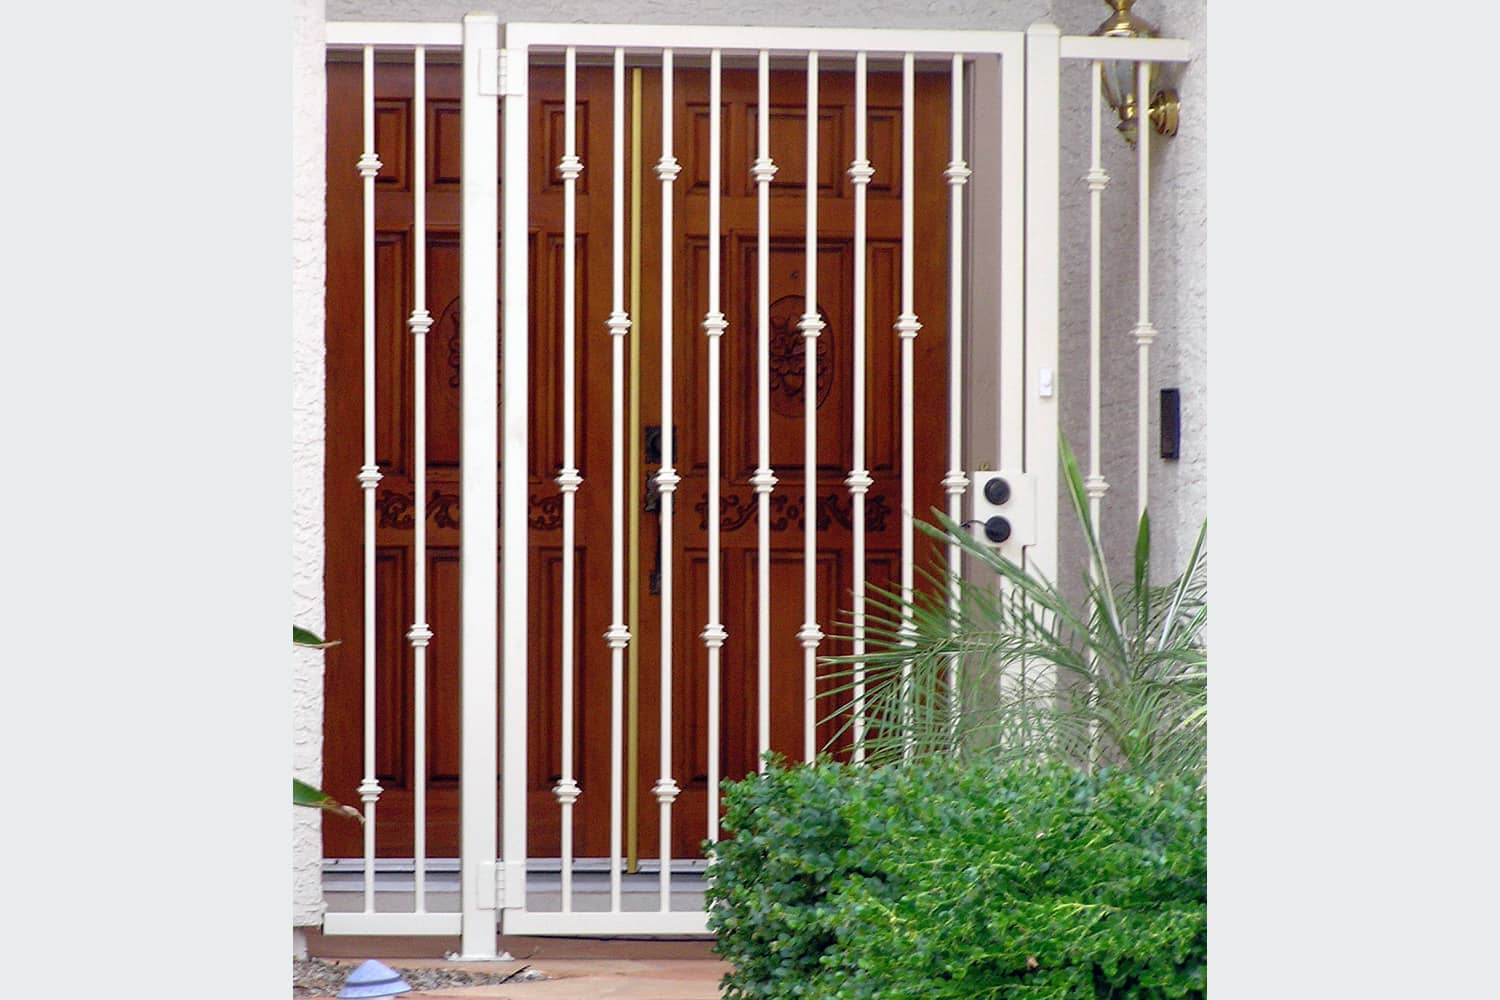 Tall Security Entry Gate and Panels